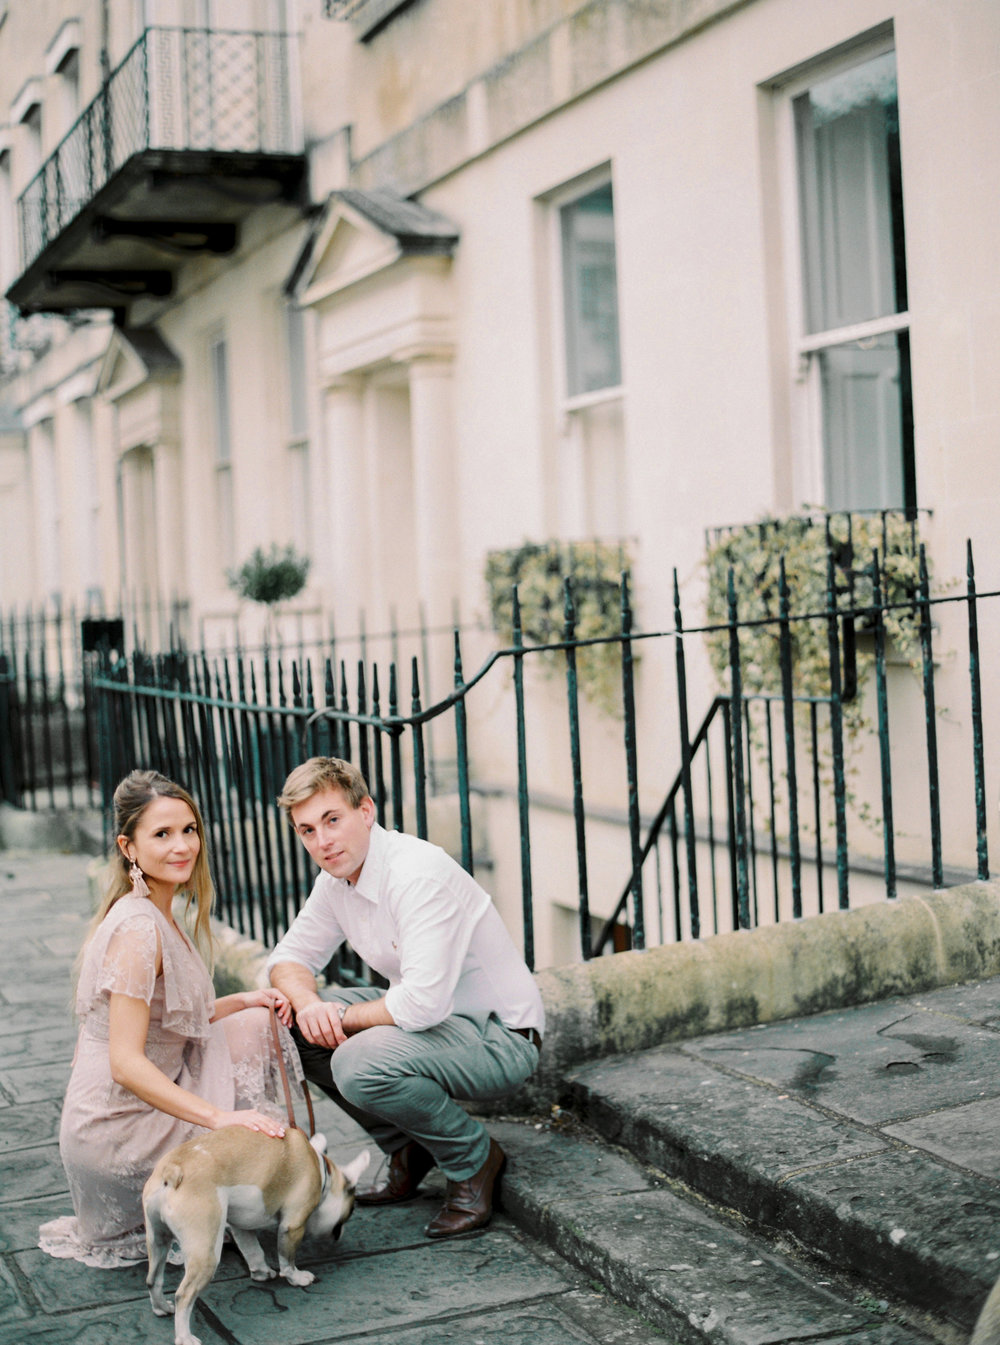 Lily & Sage | Luxury Wedding Planner UK | Our Chic & Romantic Engagement Shoot in Bath | Katie Julia Photography - 019.JPG